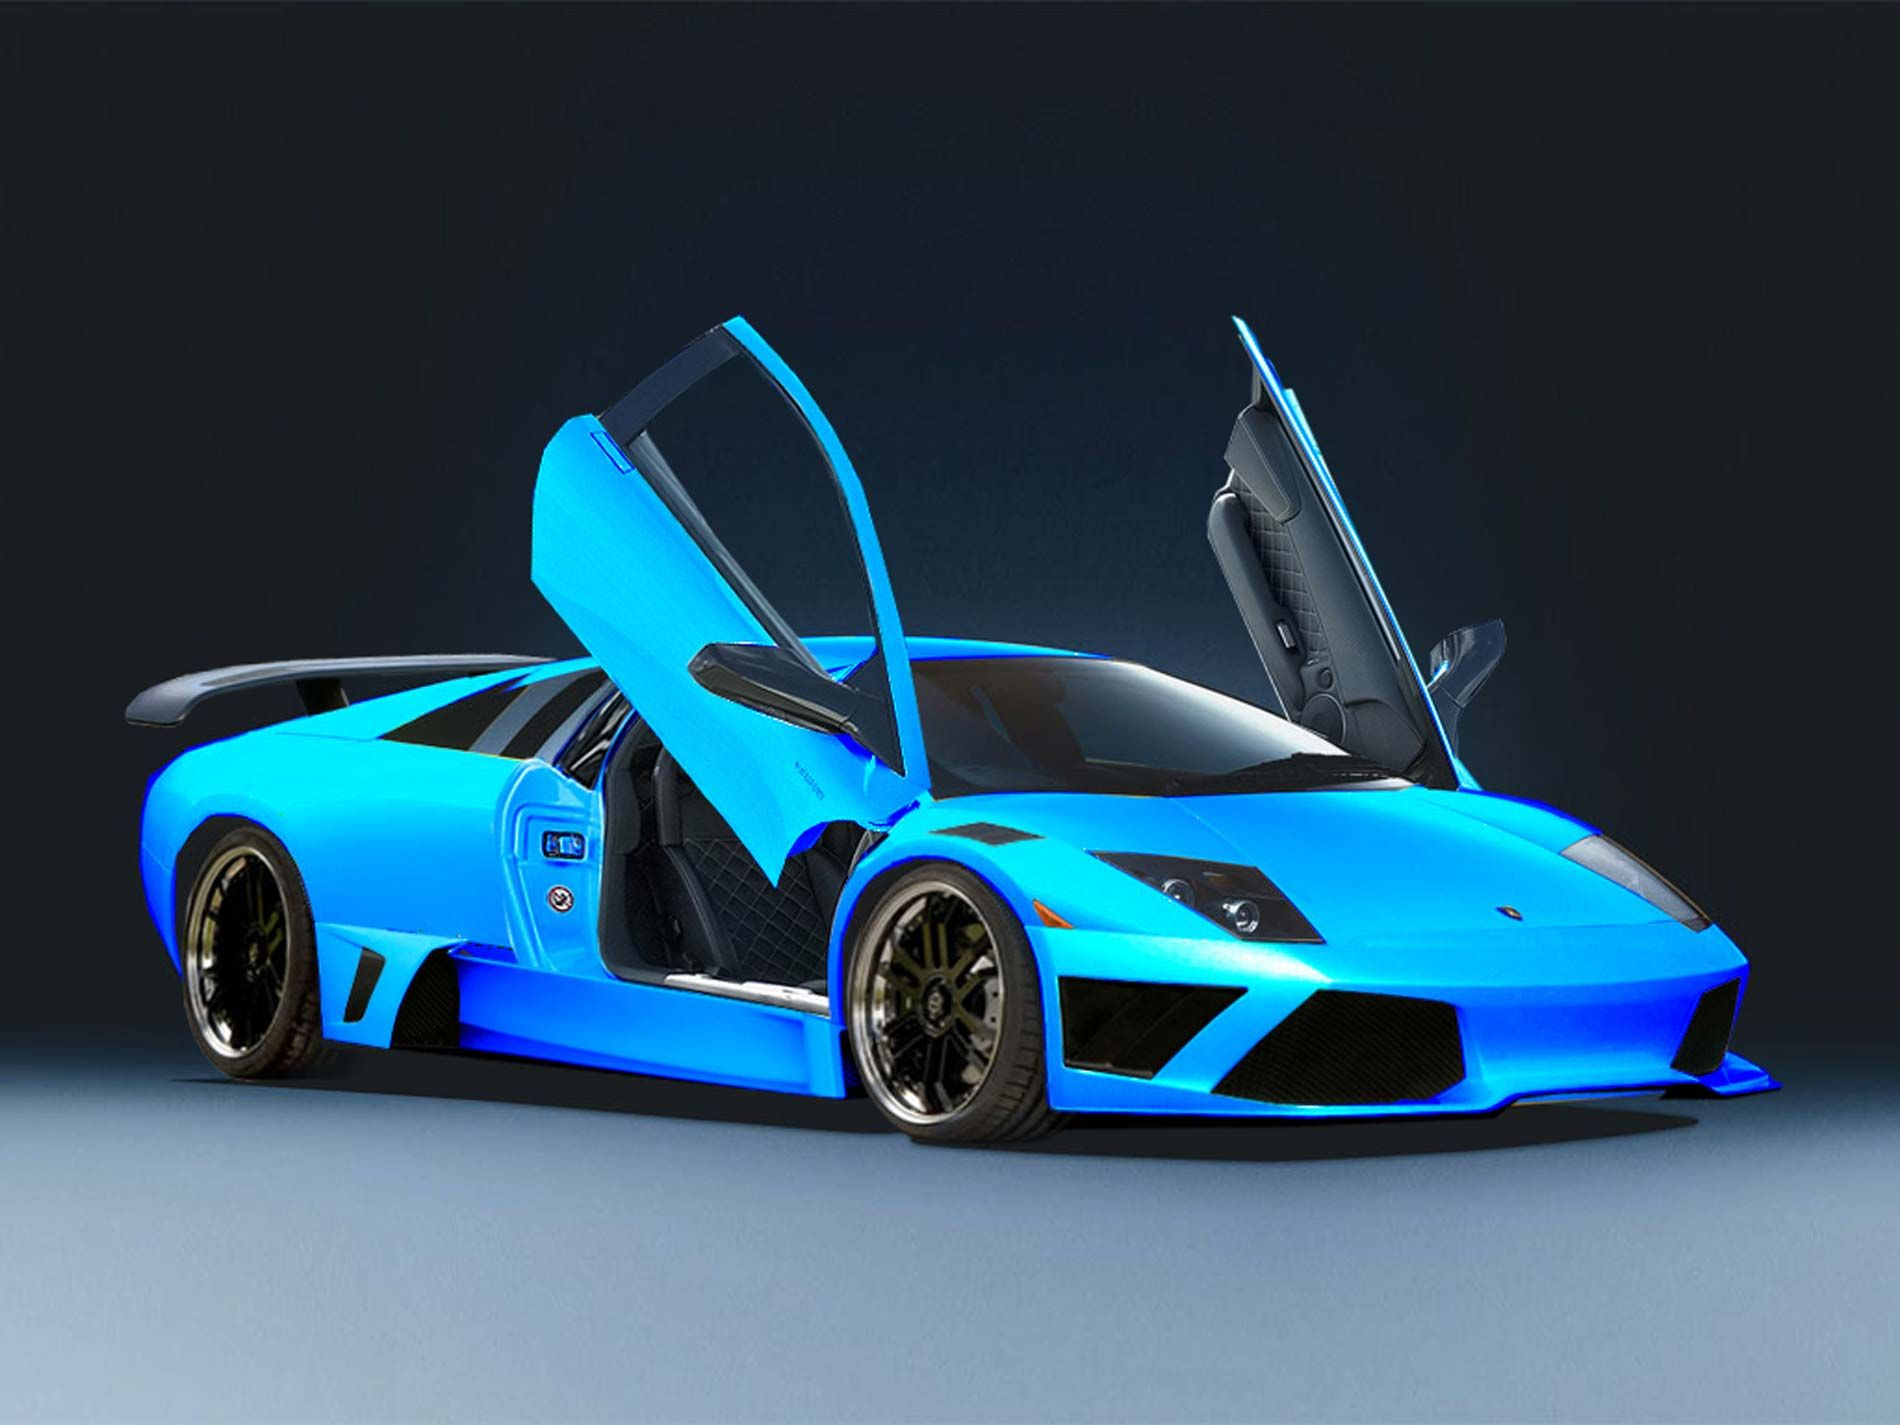 i am excited to see cars from italy that are world famous like lamborghini maserati and ferrari lamborghini murcielago blue wallpaper - Lamborghini Gallardo Wallpaper Blue